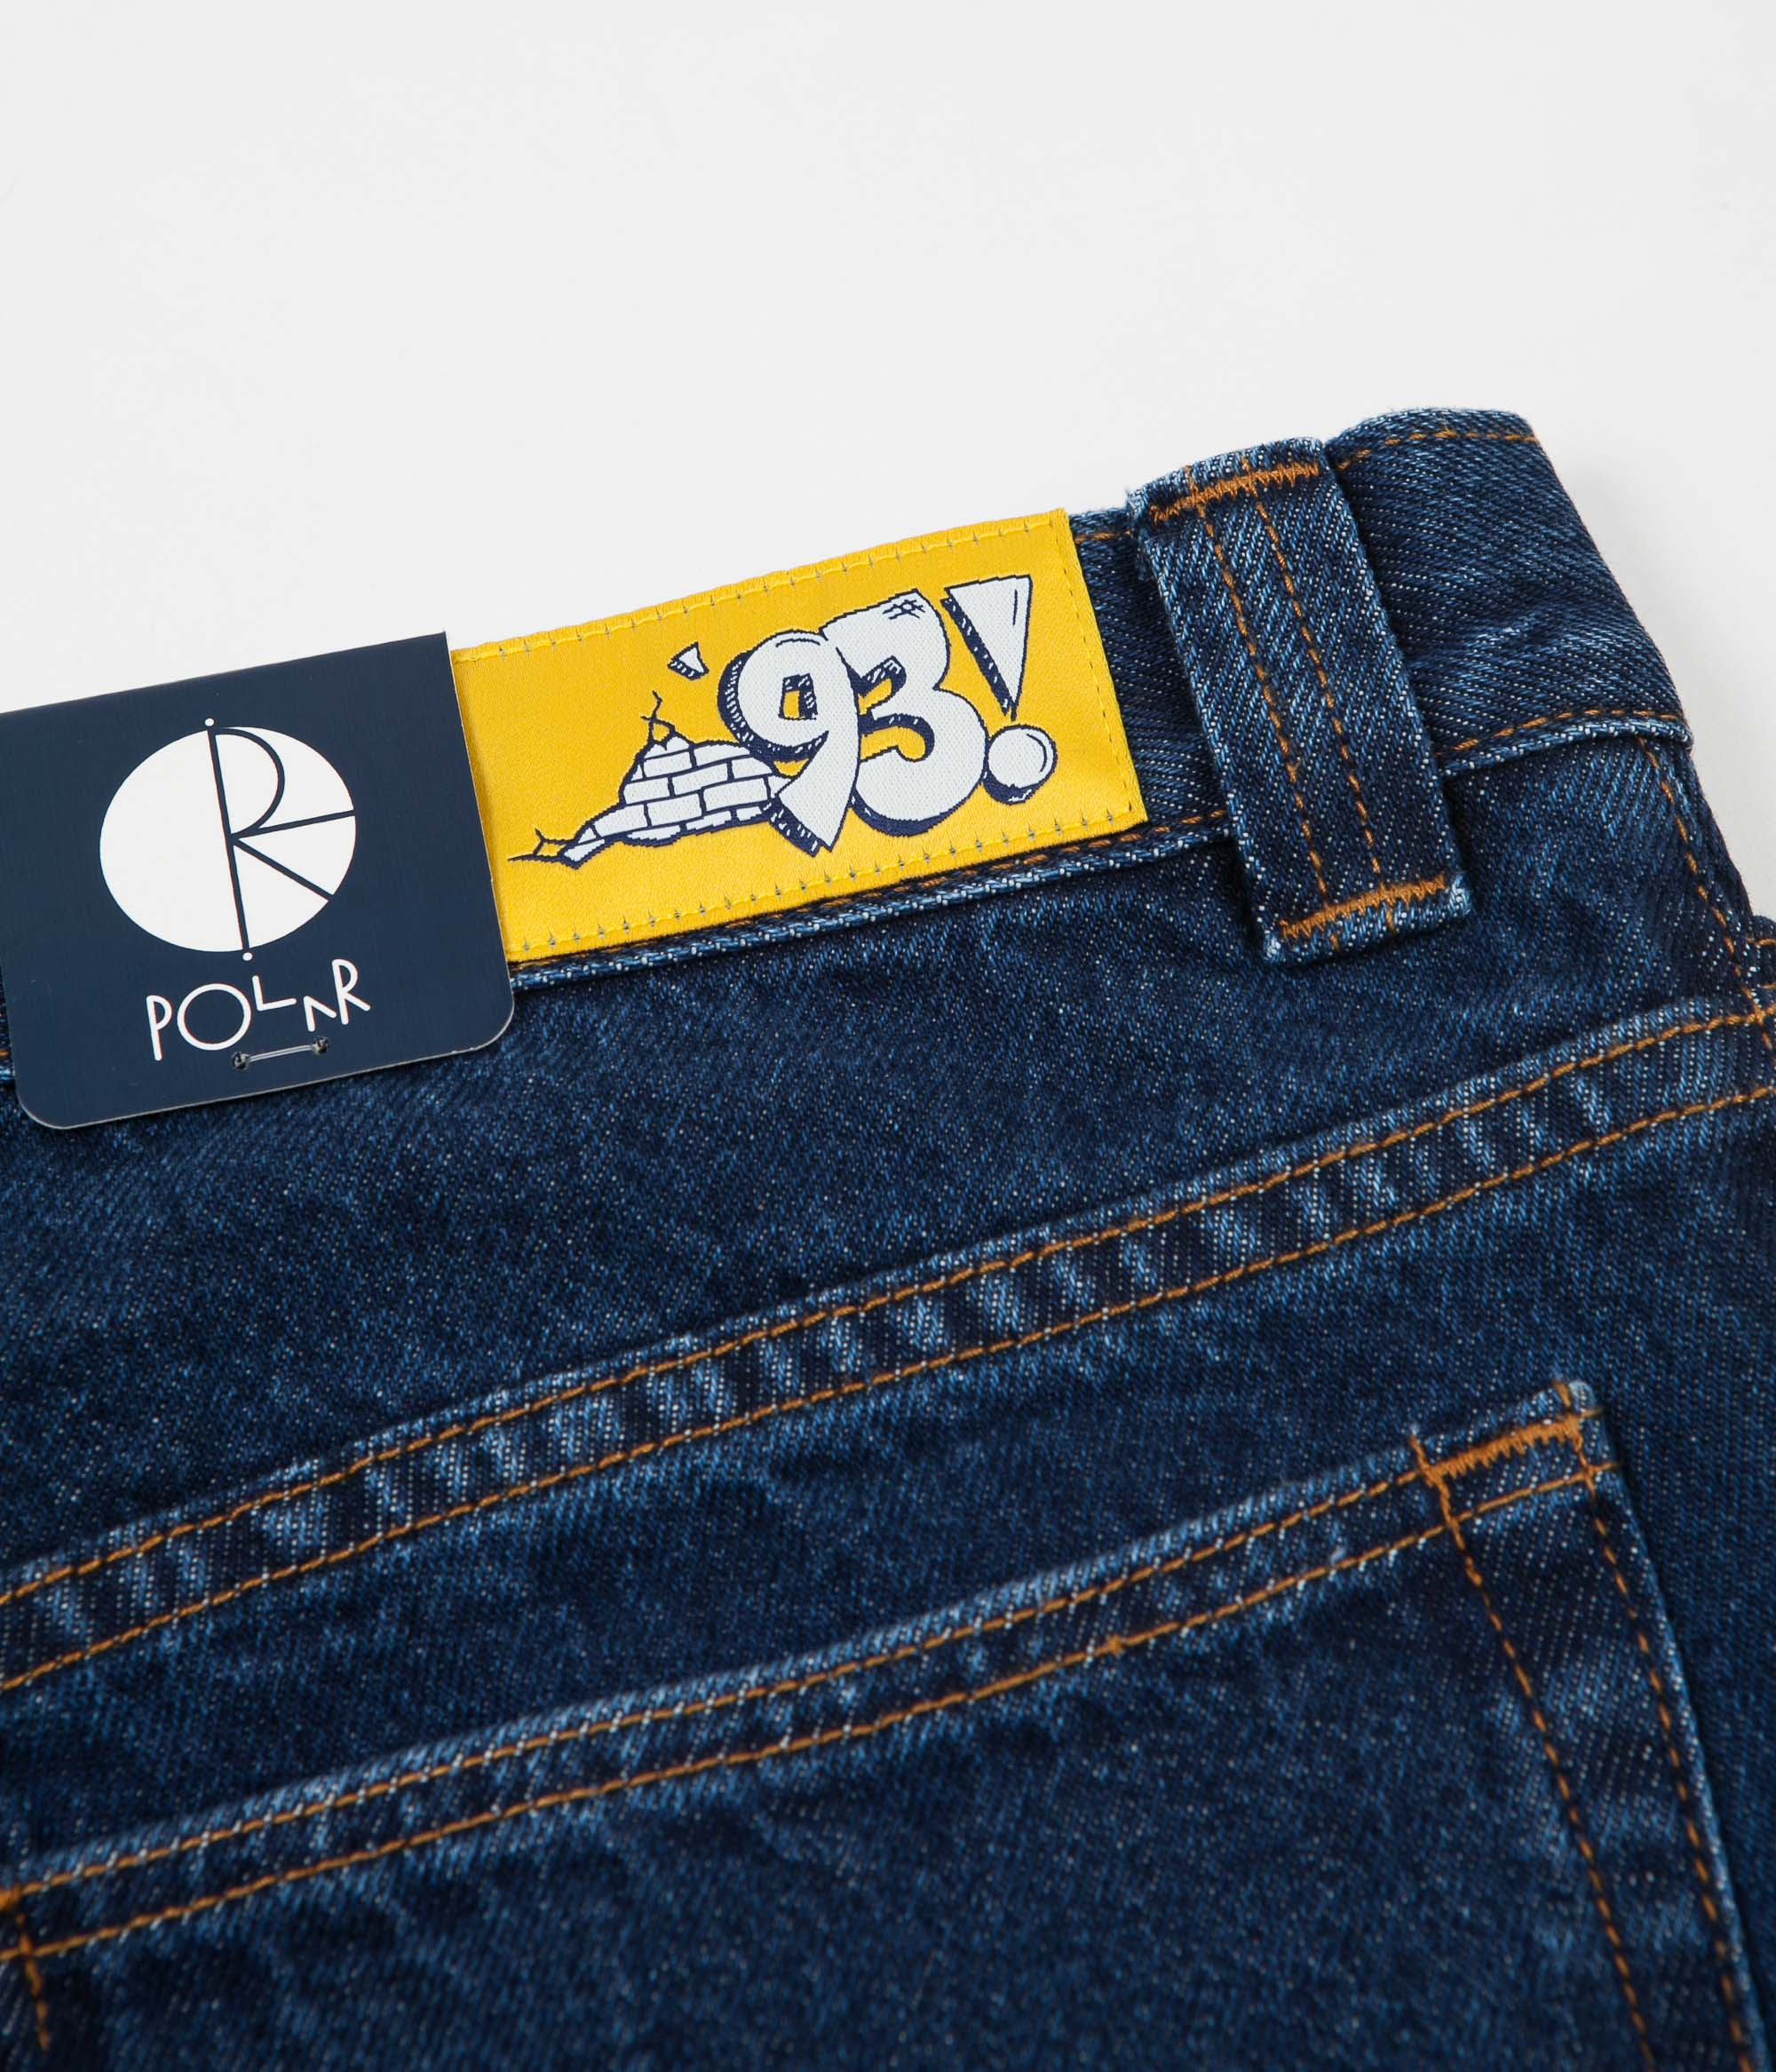 Polar 93 Denim Jeans - Dark Blue